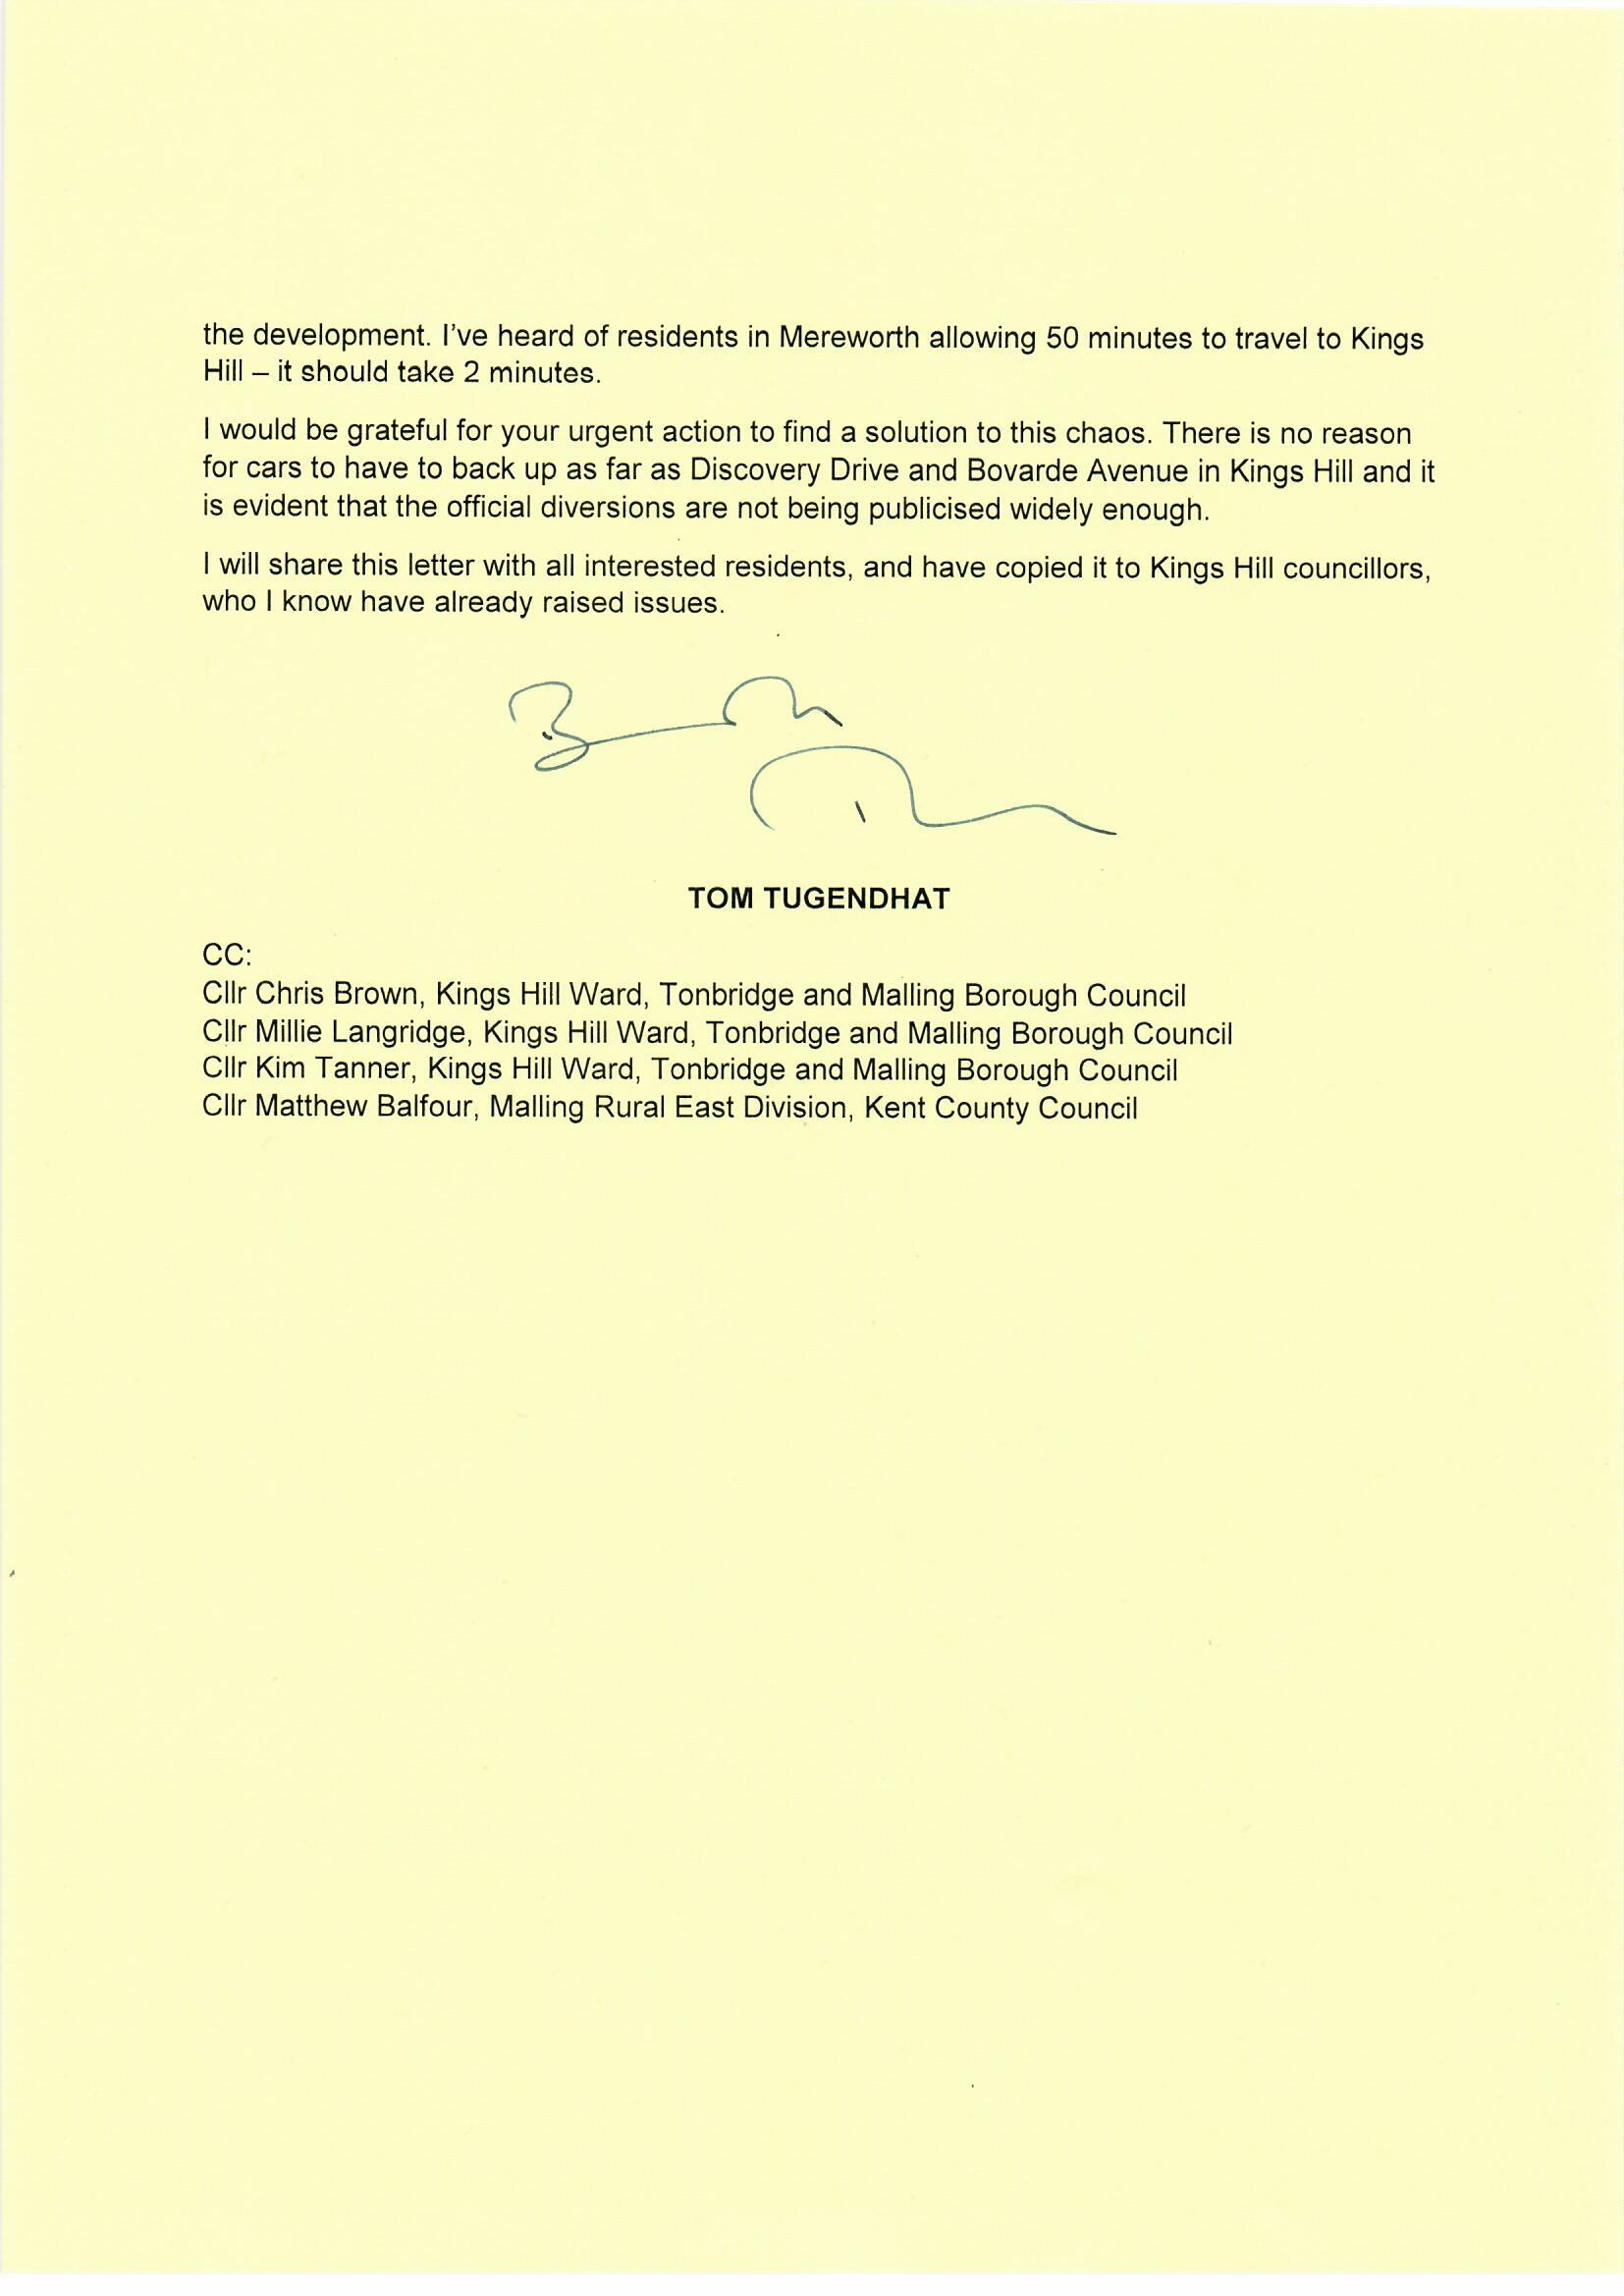 20190731 - Tom Tugendhat to Mike Whiting, A228 closure0002.jpg